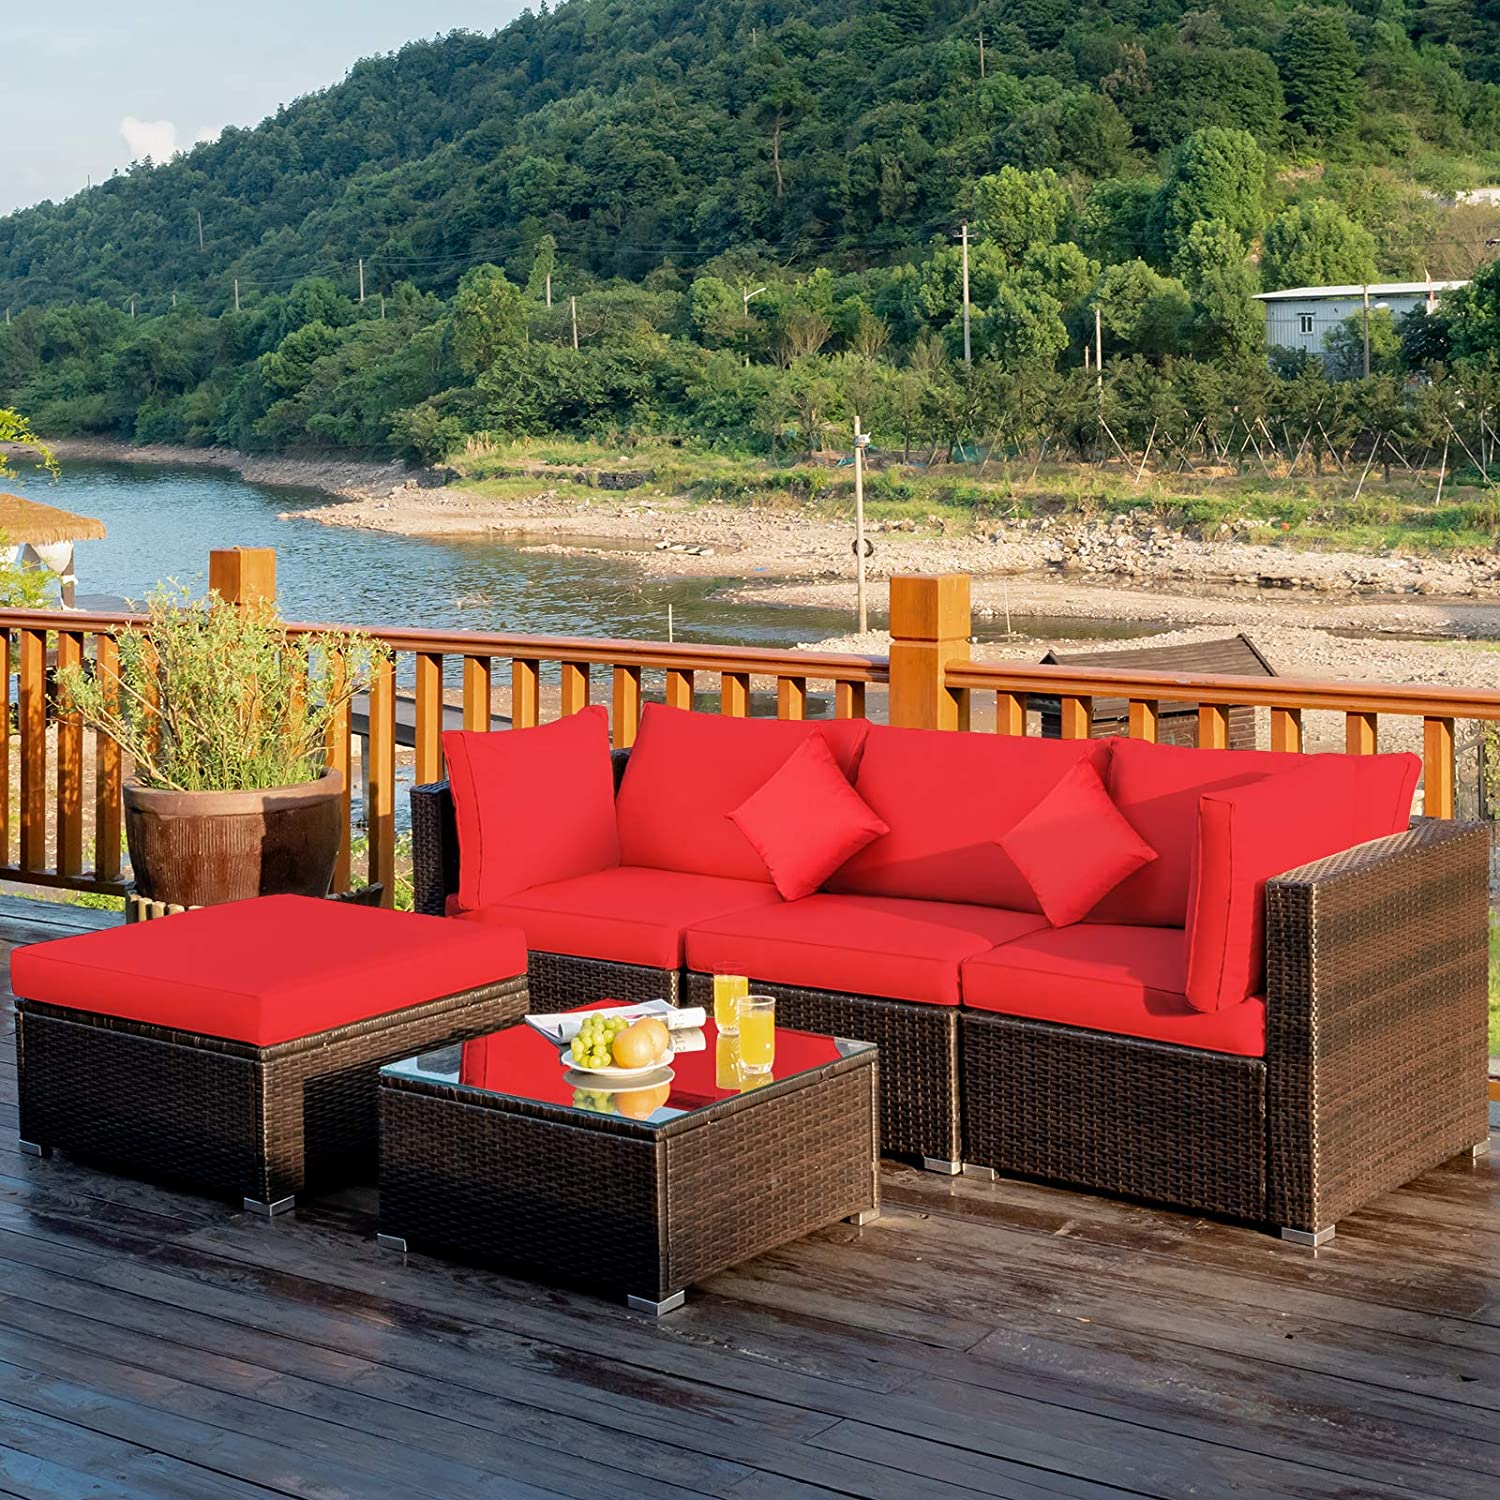 Tangkula 5 PCS Patio Rattan Furniture Set, Outdoor Sectional Rattan Sofa Set with Back & Seat Cushions, Wicker Conversation Set with Tempered Glass Table for Backyard Porch Garden Poolside (Red)